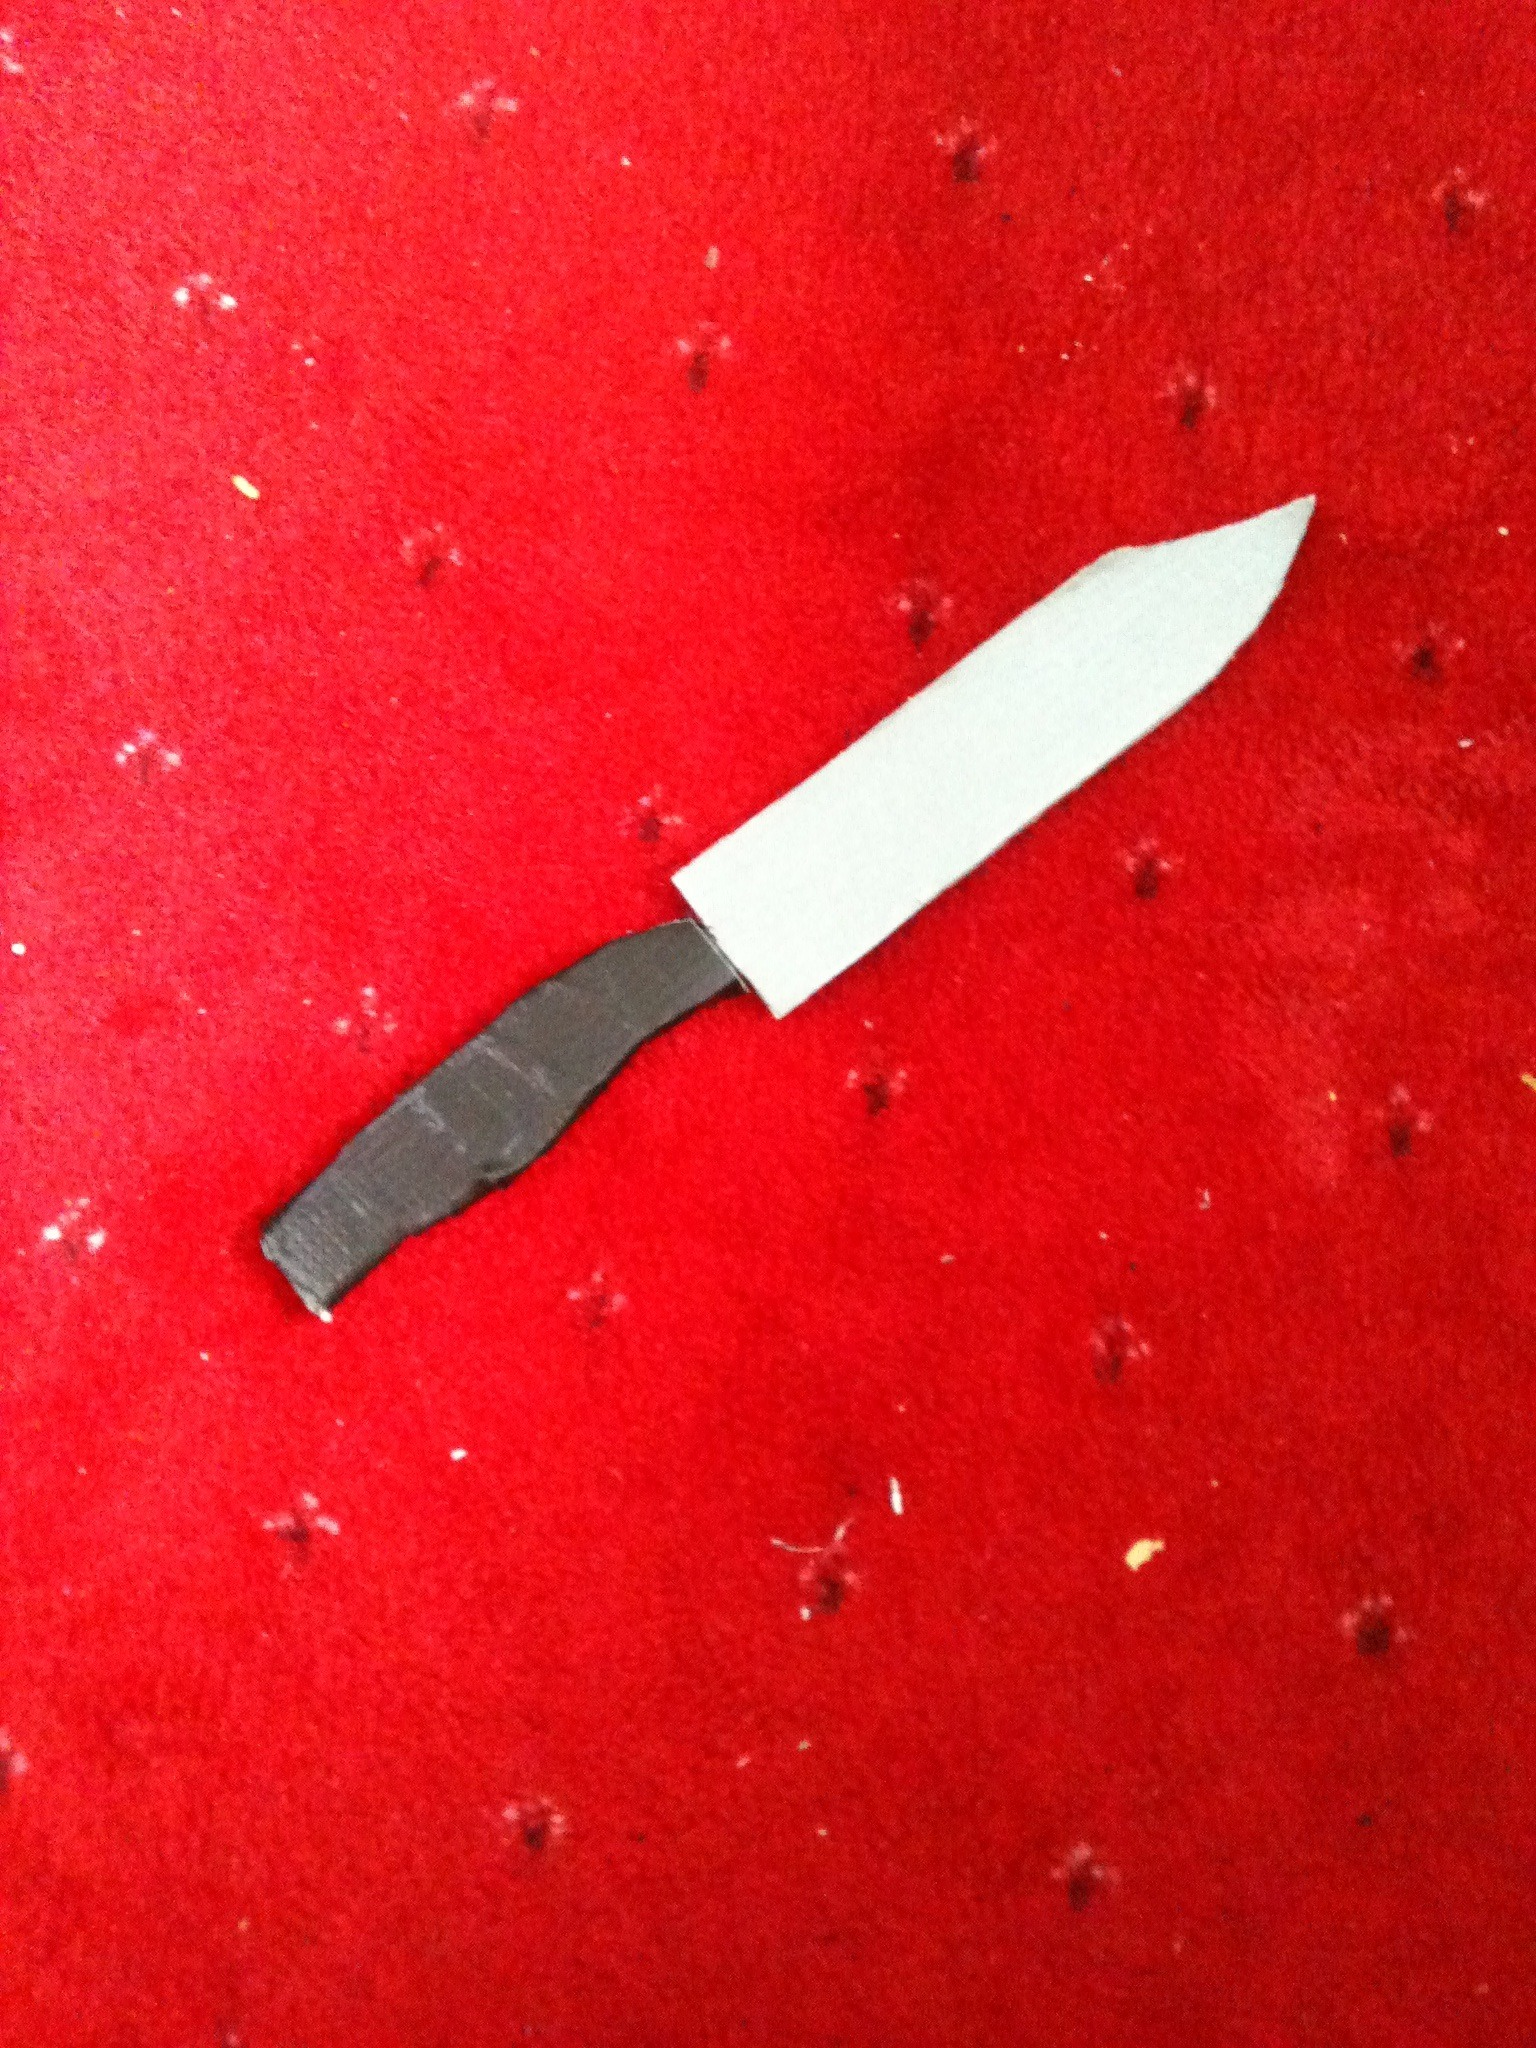 Picture of Cardboard Military/Combat Knife